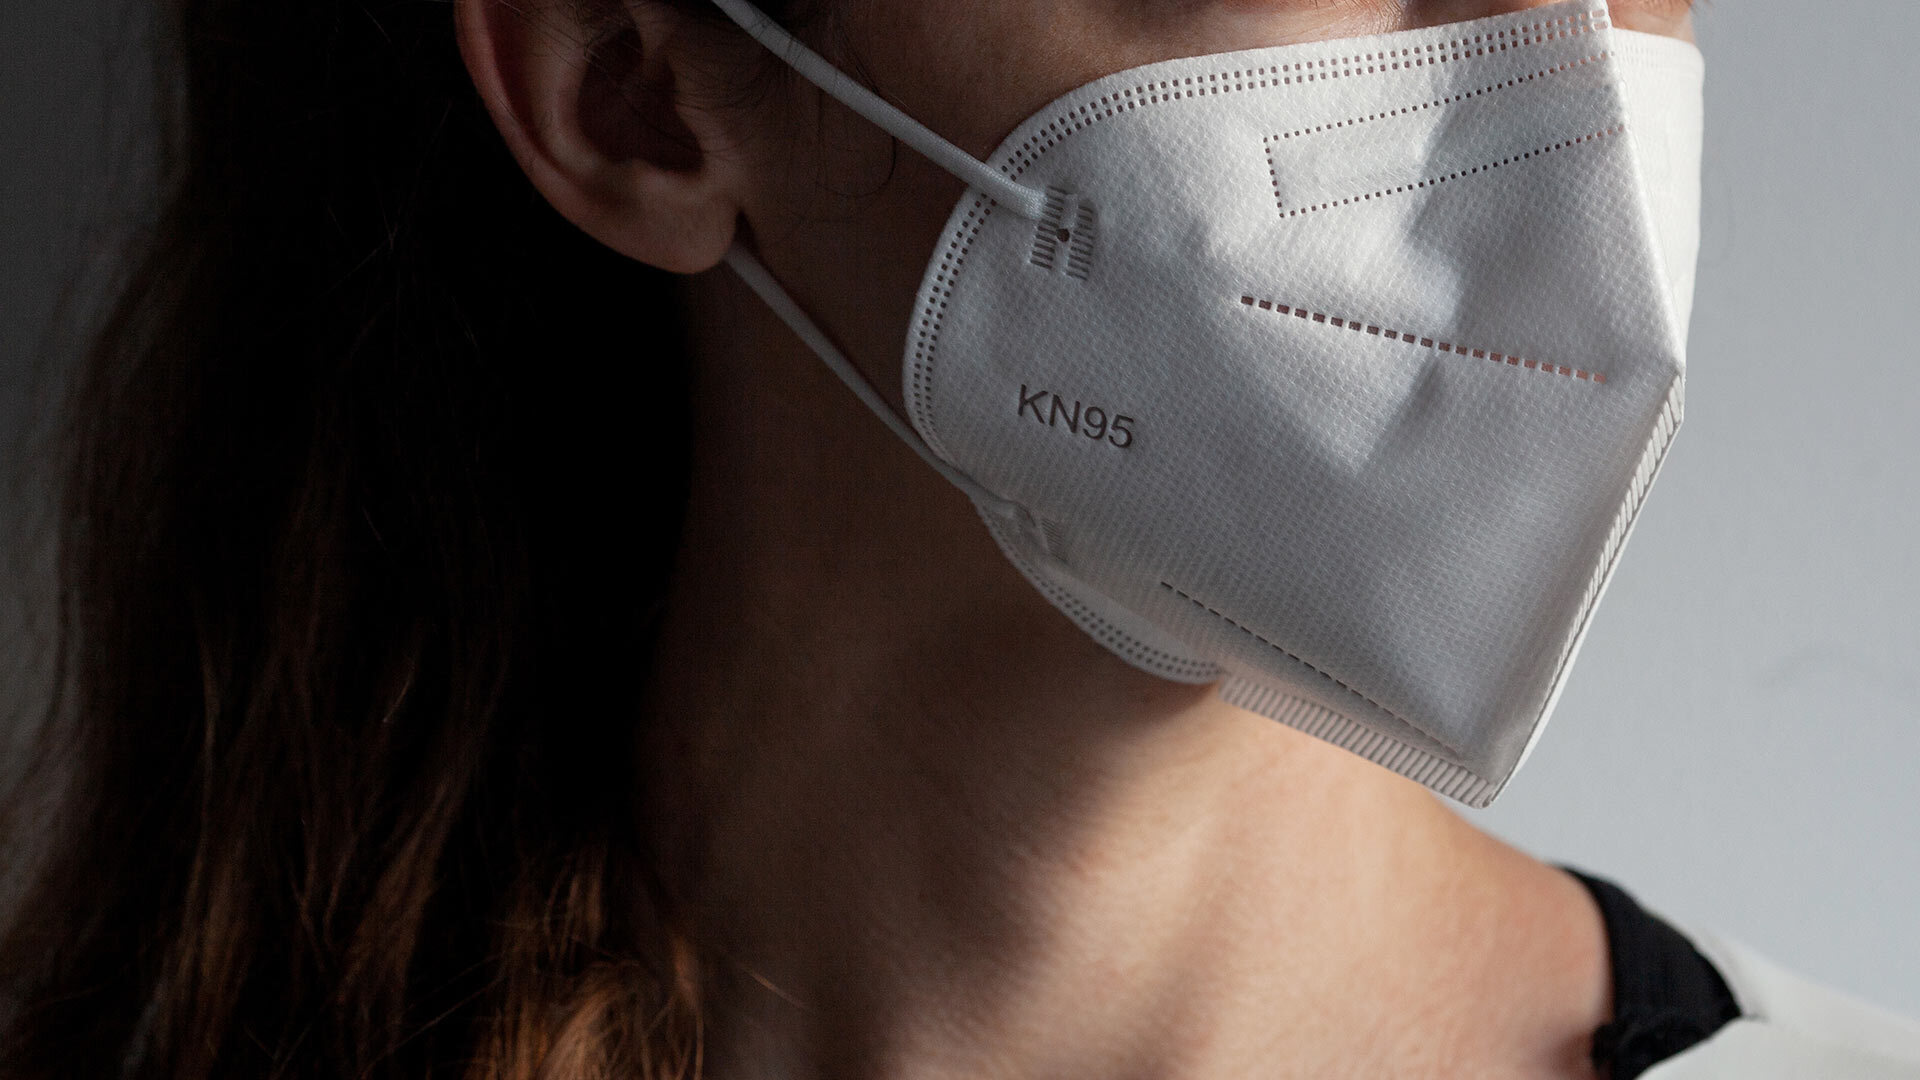 UMD has expanded its initial order of reusable KN95 masks, which provide a higher level of protection against COVID-19 than some other commonly worn face coverings. In an email today, officials offered guidelines for wearing and disposing of the masks.  Photo by Shutterstock